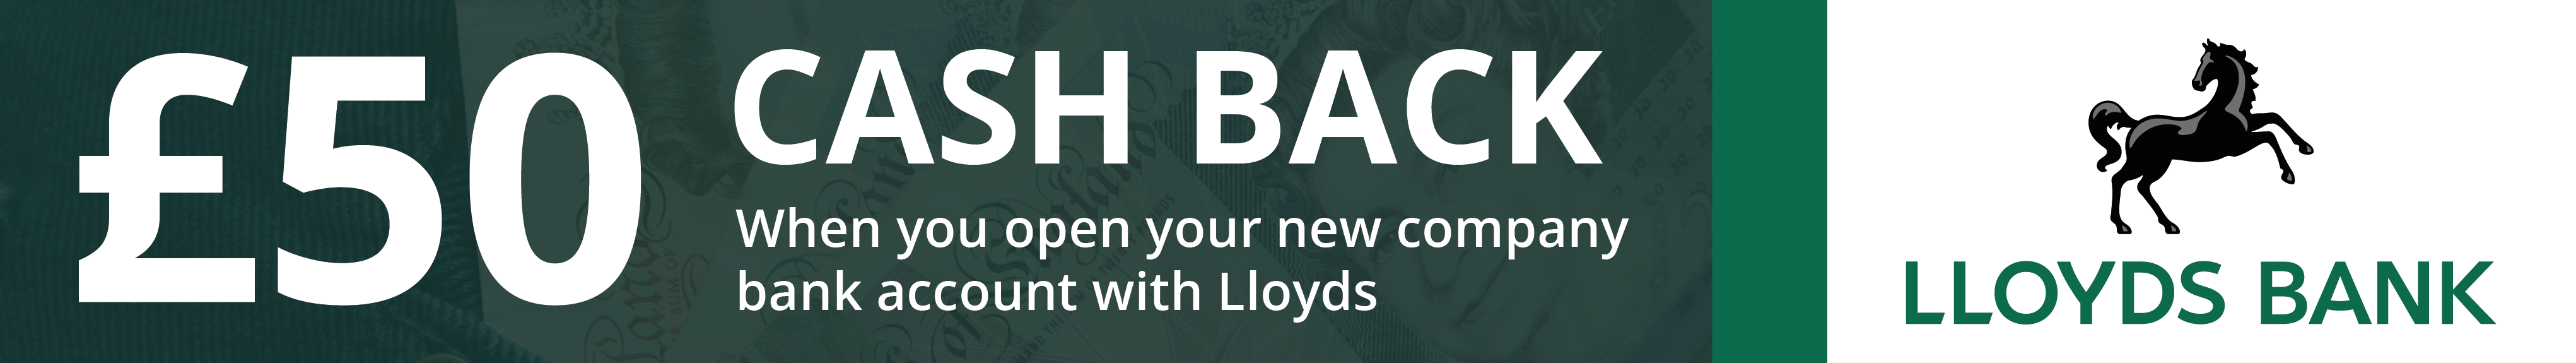 £ 50 Cash Back when you open your new company bank account with Lloyds through us